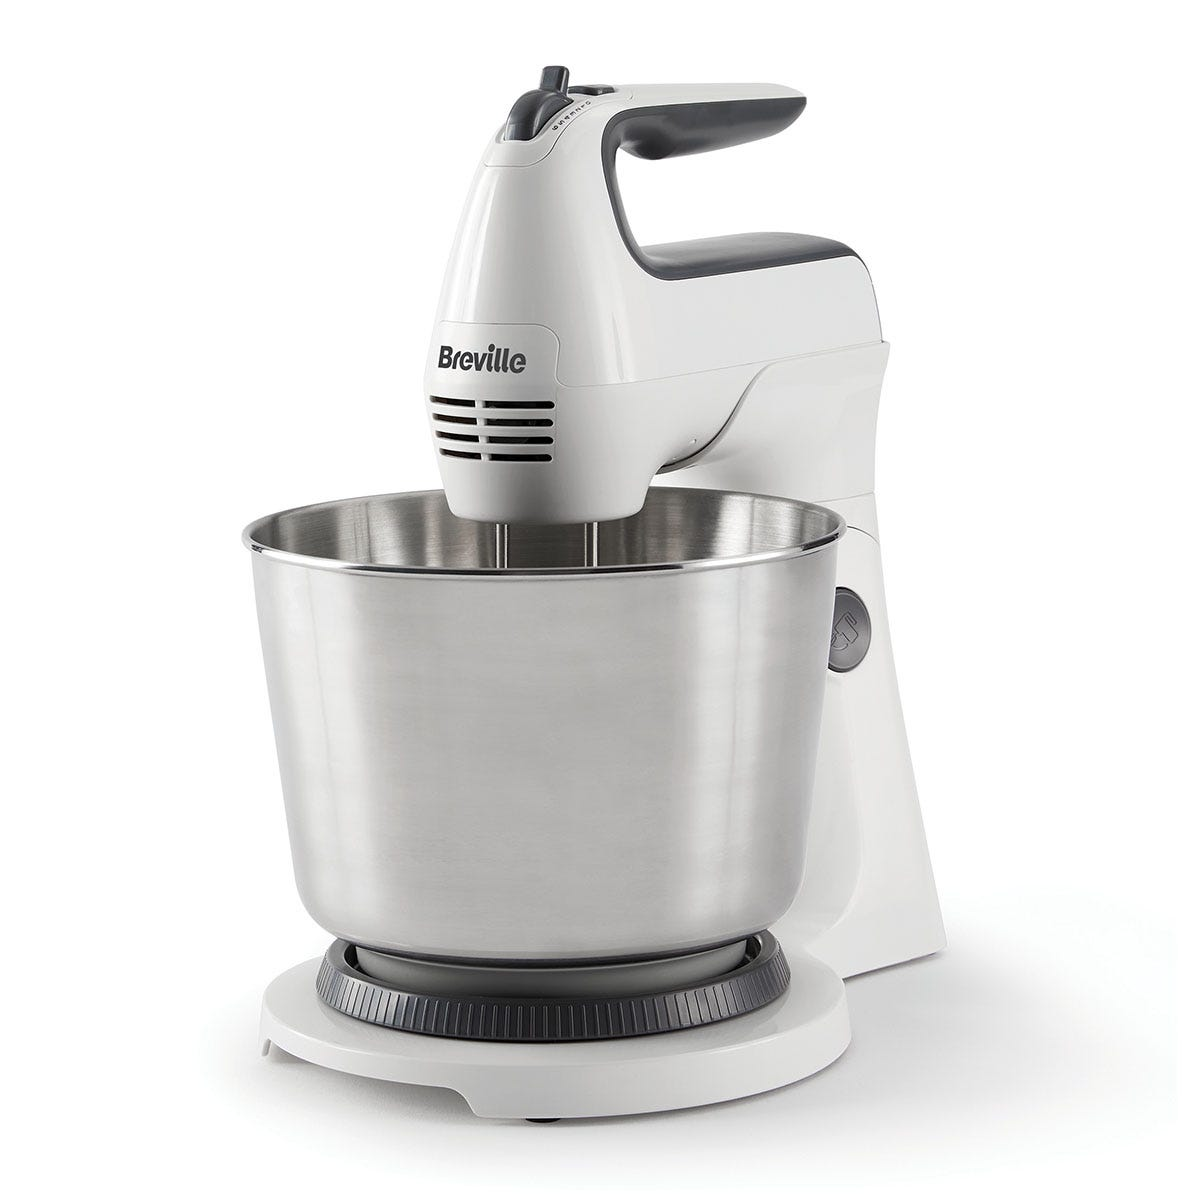 Breville VFM031 Classic Combo Stand and Hand 3.7L Mixer - White